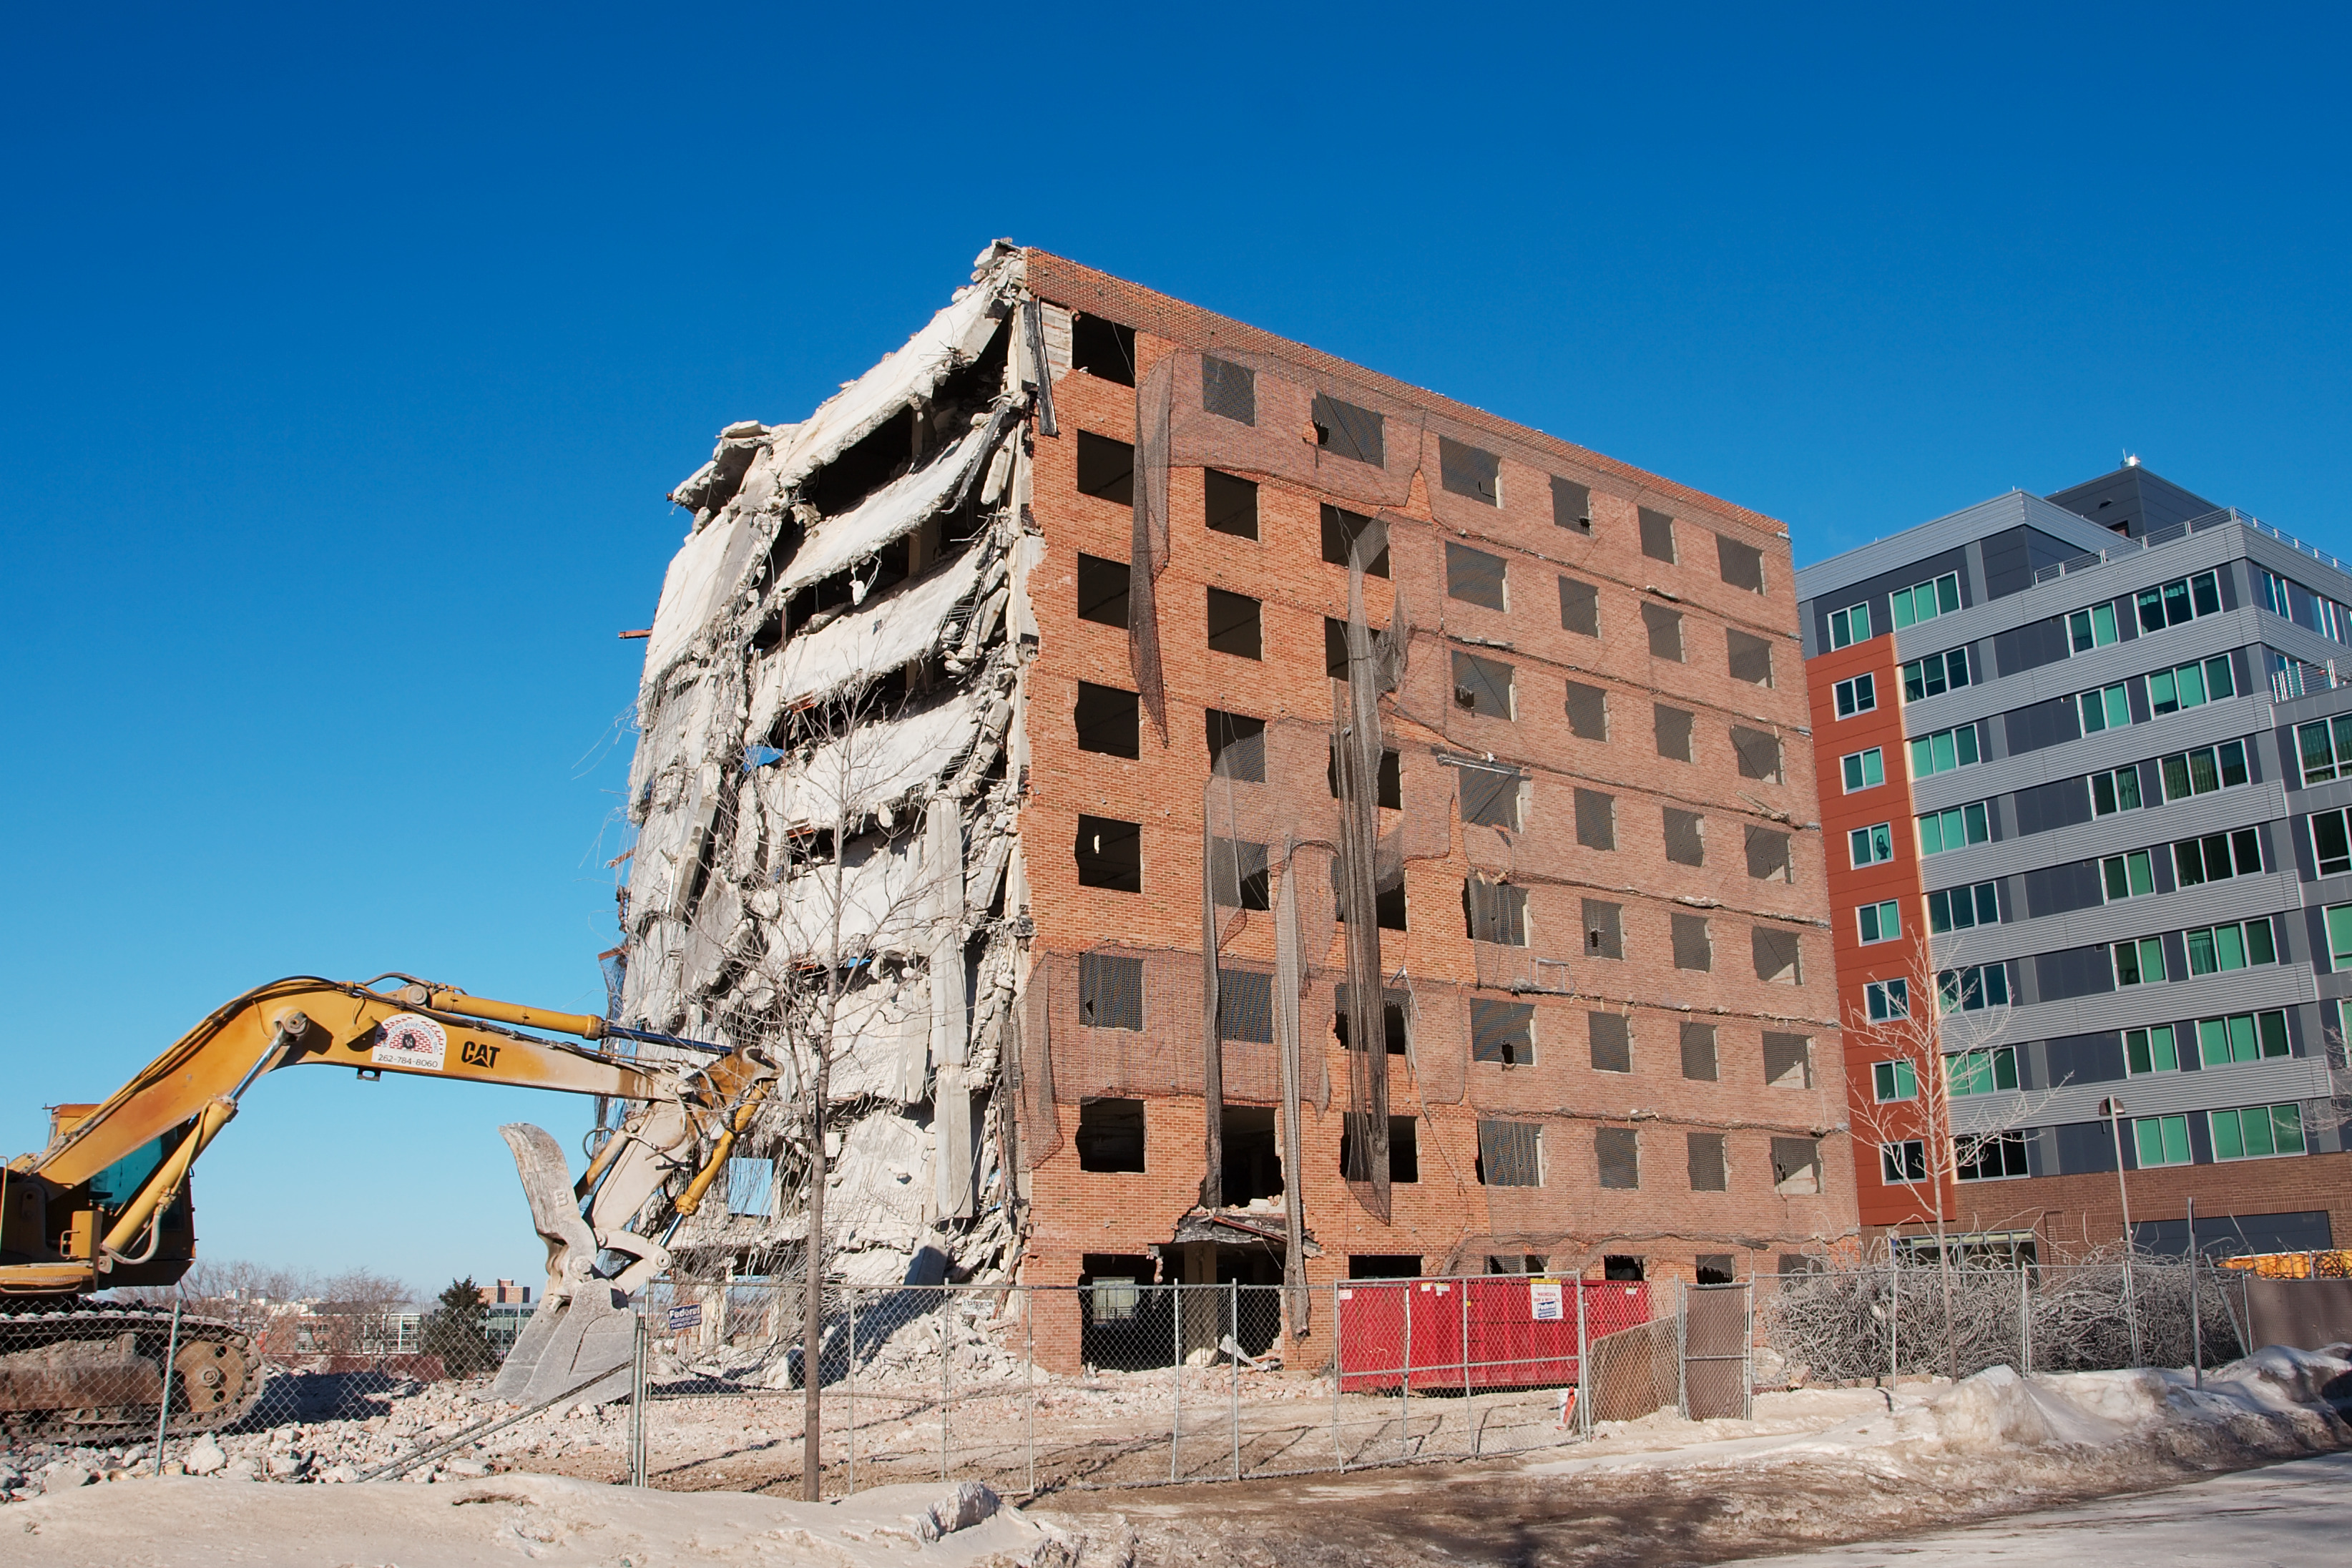 File:Milwaukee Wisconsin demolition 20090124 1568.jpg